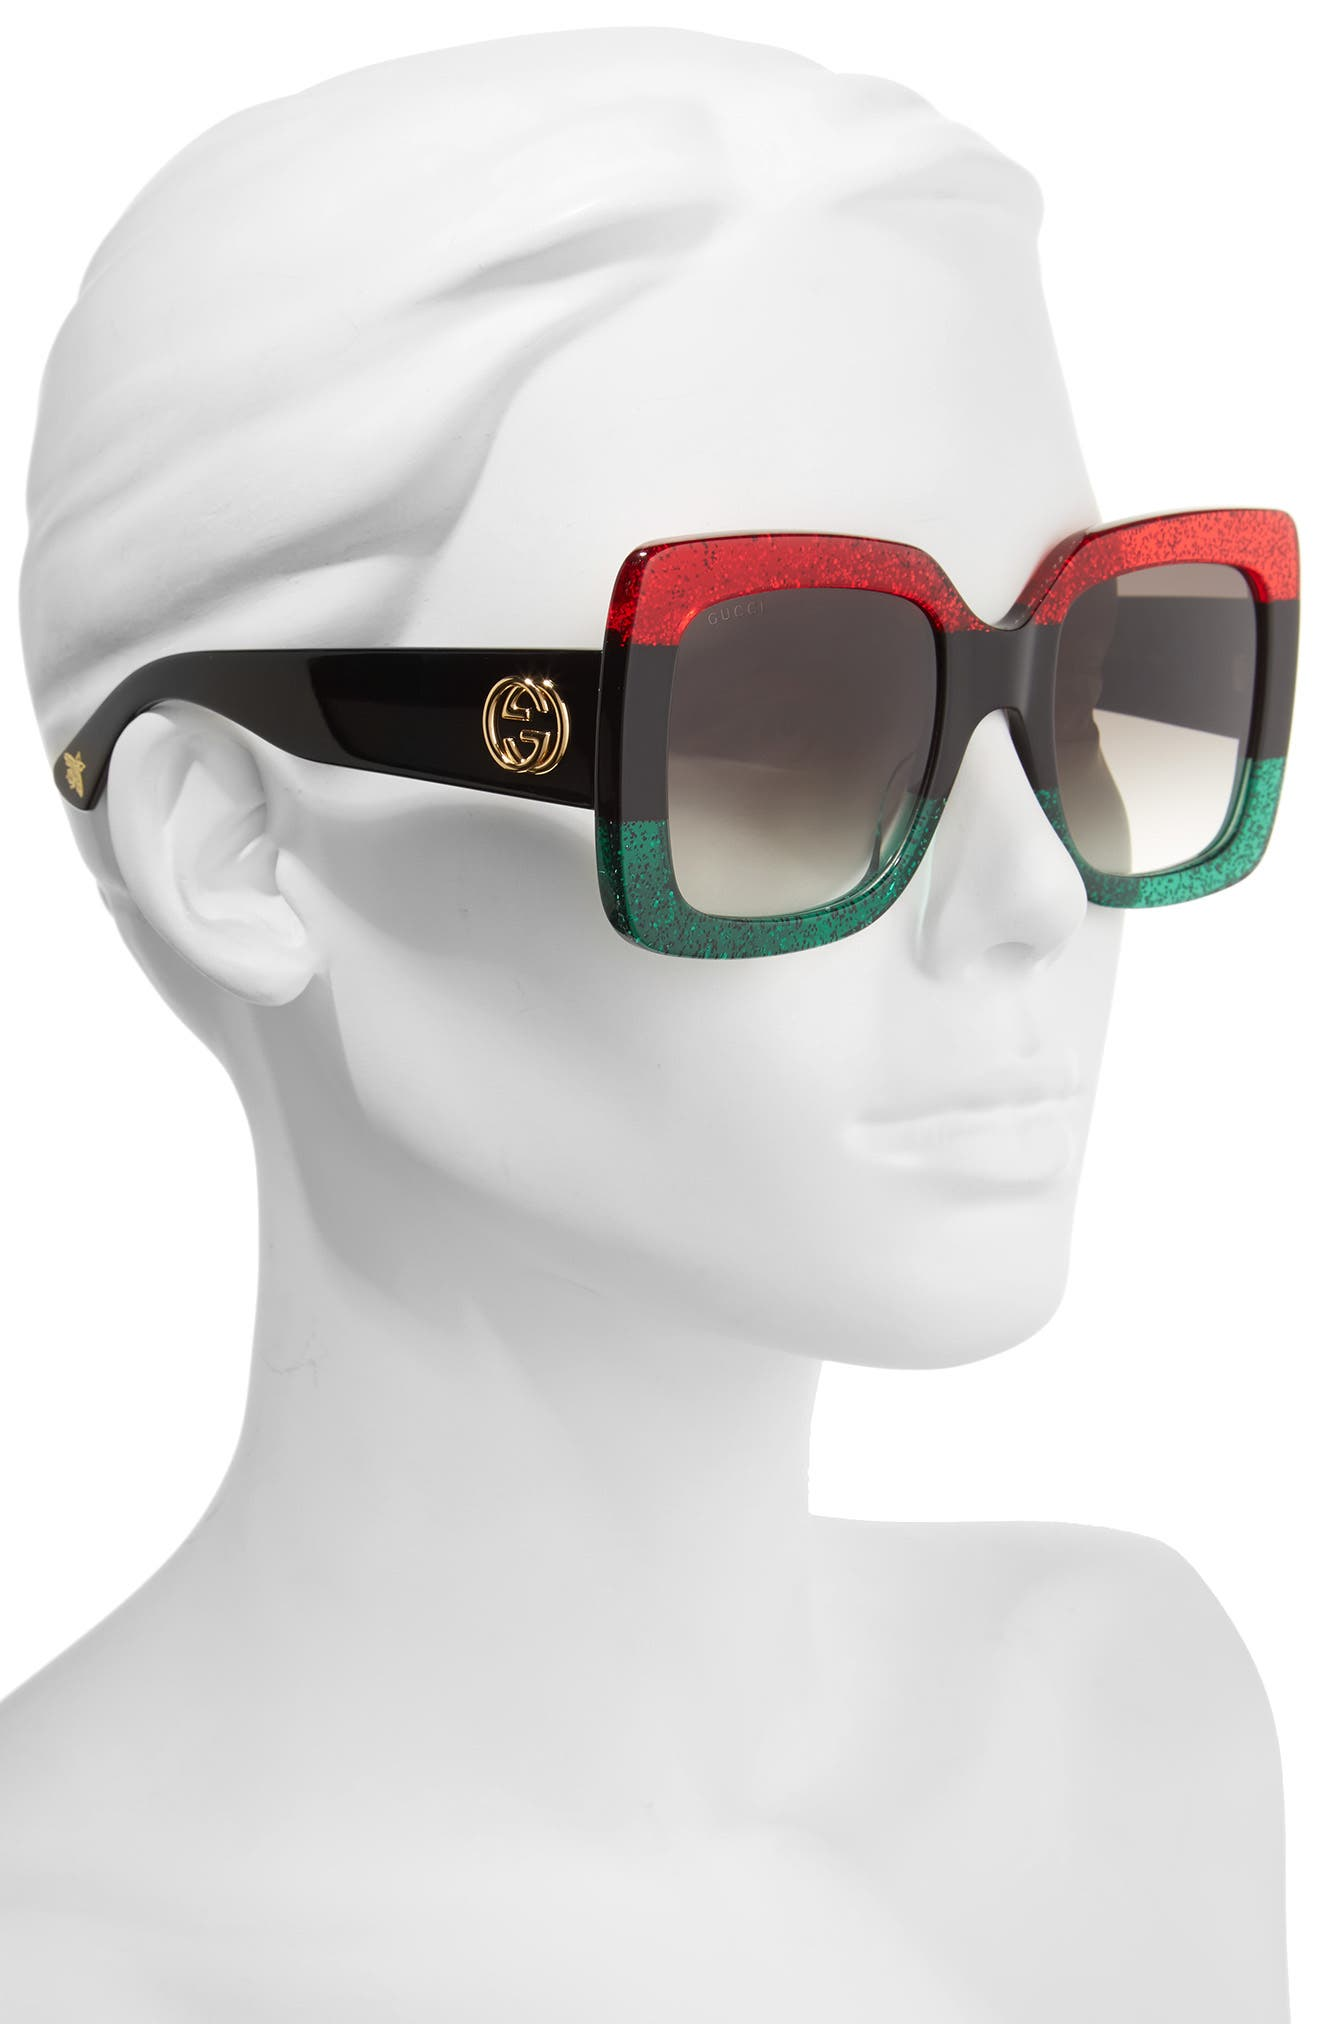 55mm Square Sunglasses,                             Alternate thumbnail 2, color,                             Red Black Green/ Grey